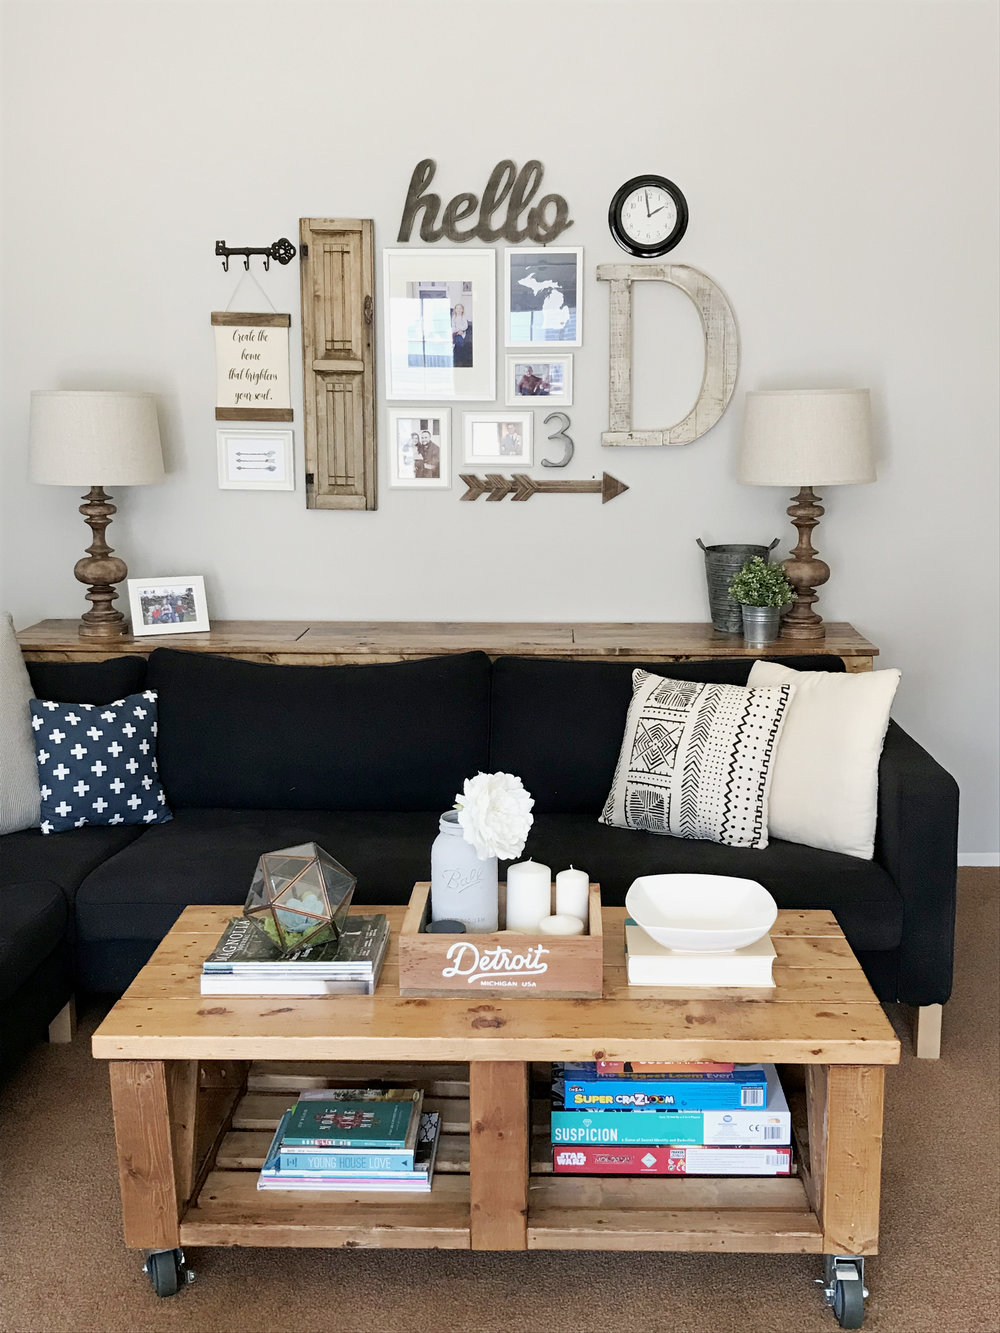 How To Style A Coffee Table Grain Galley Interiors - Super low coffee table